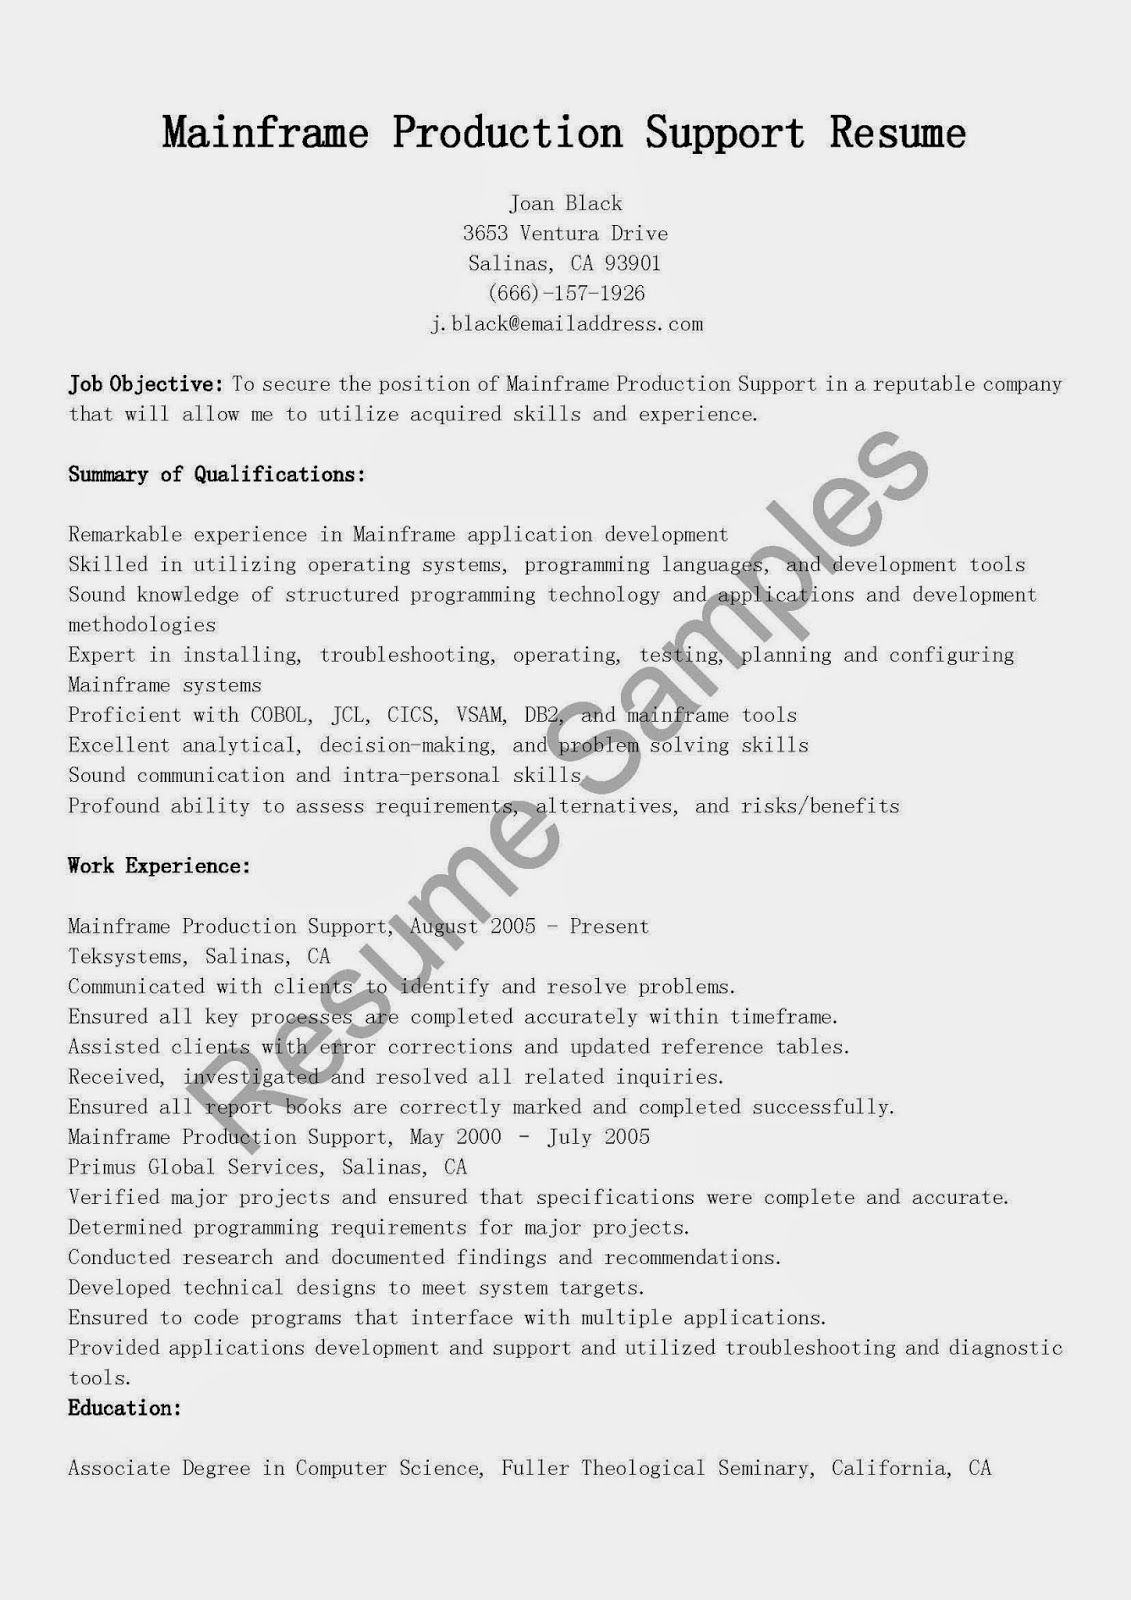 Teaching Resume Objective Mainframe Production Support Resume Sample  Resume Samples